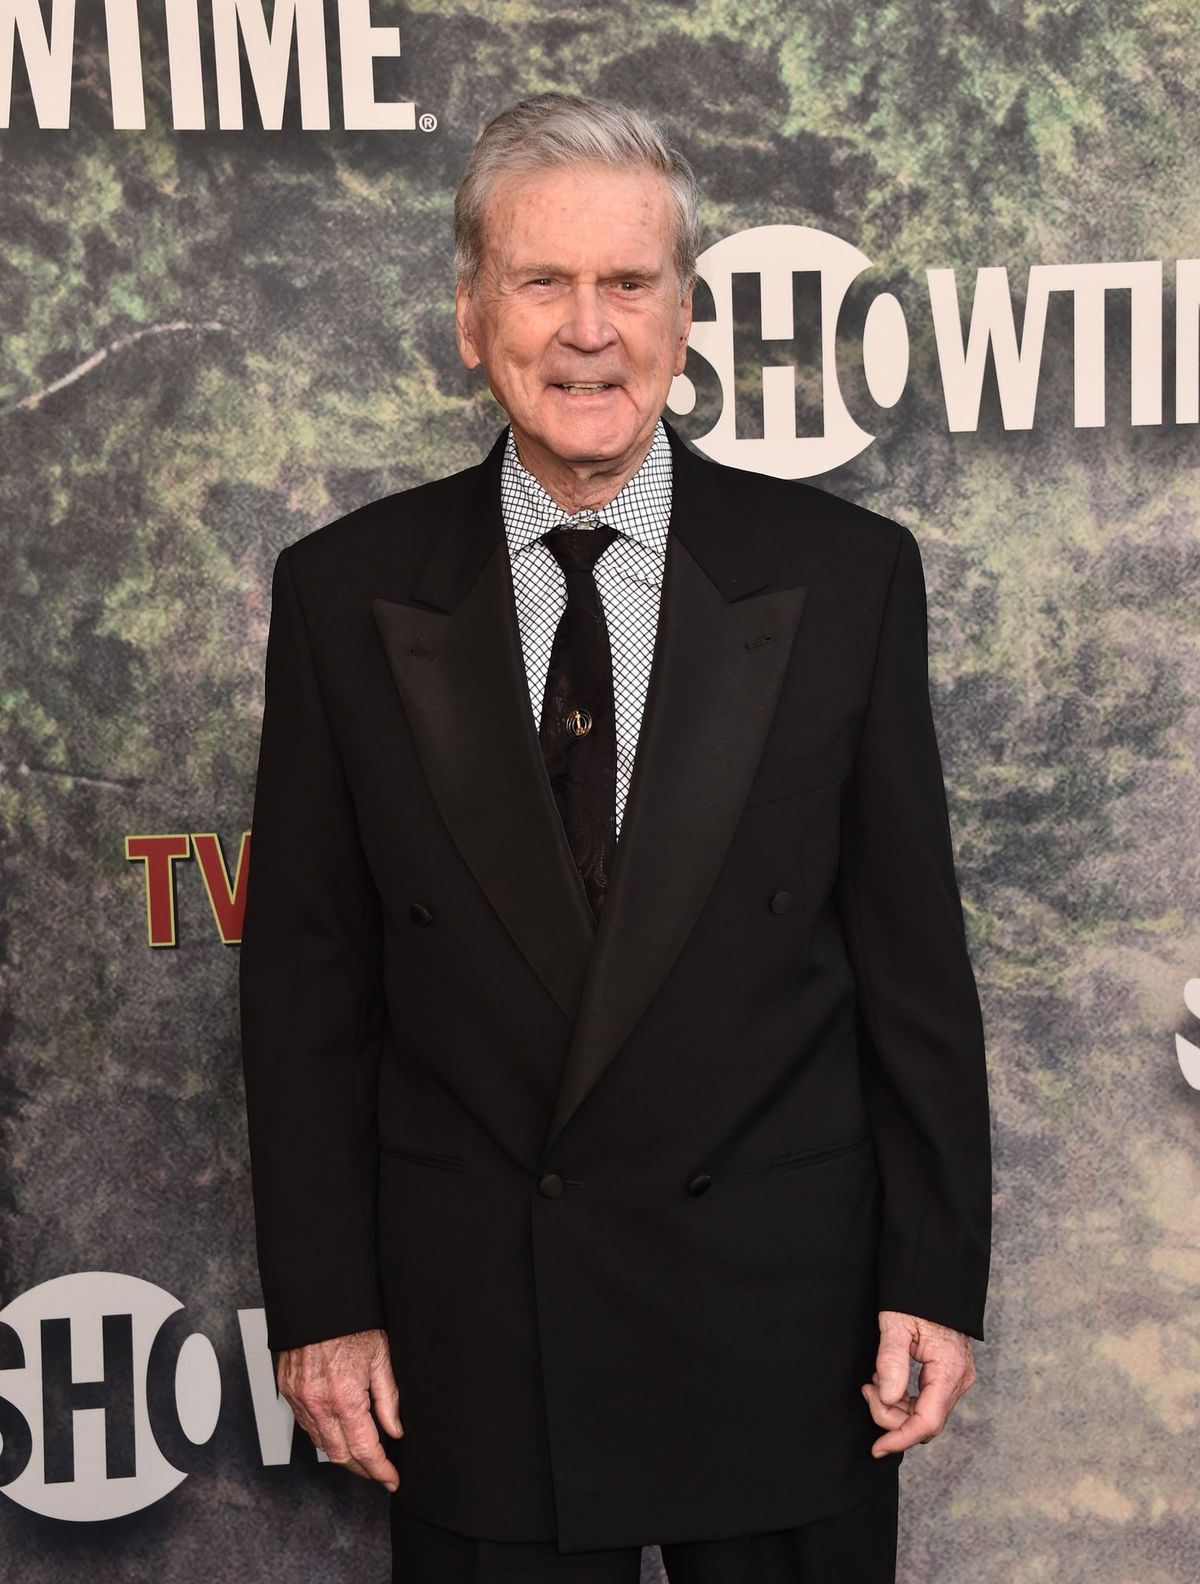 """Don Murray attends the premiere of Showtime's """"Twin Peaks"""" at The Theatre at Ace Hotel on May 19, 2017 in Los Angeles, California. 